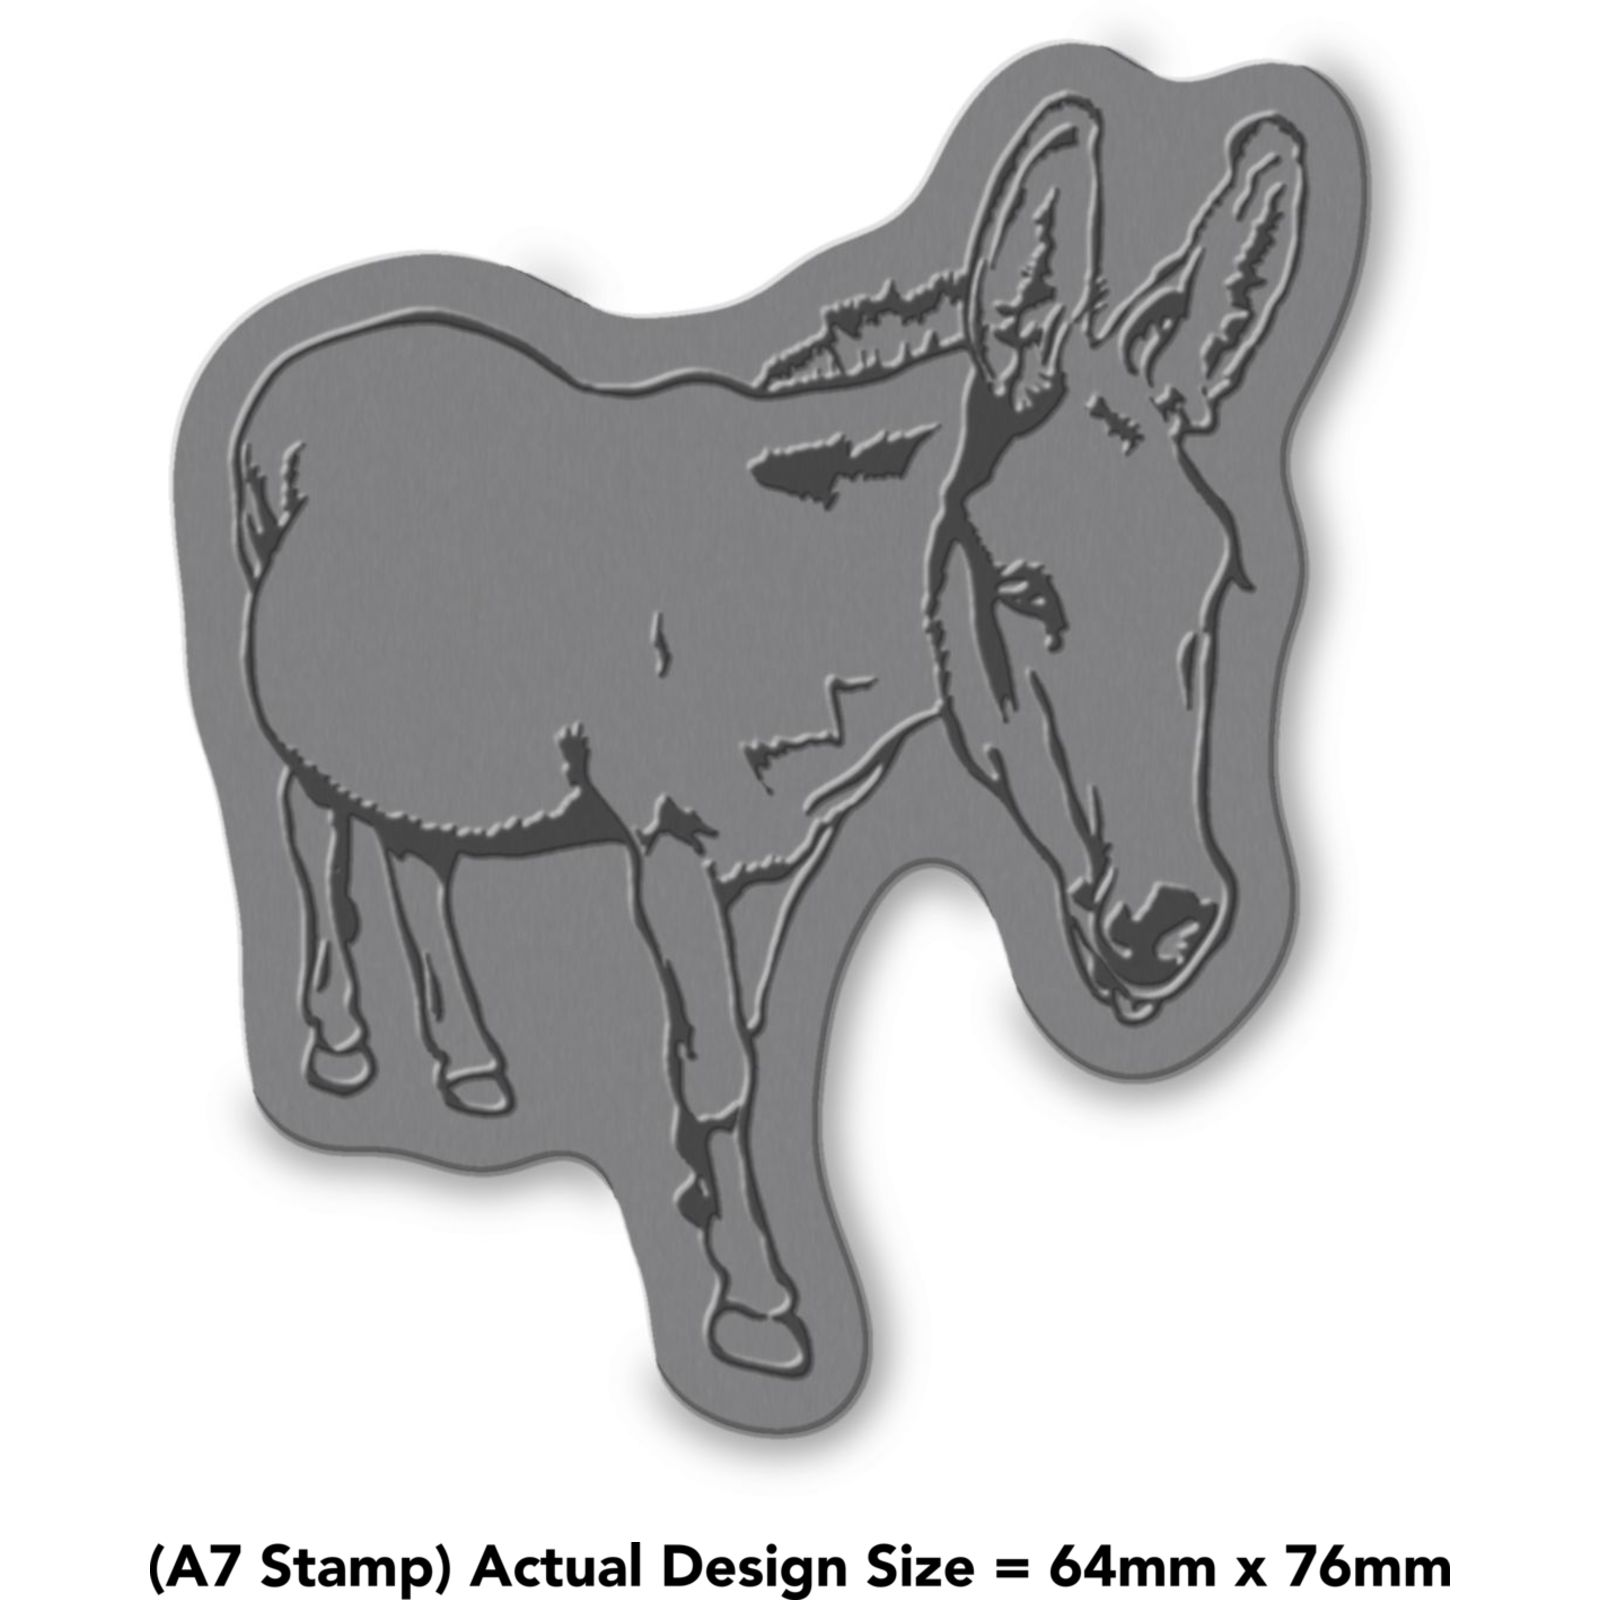 A8 Friendly Donkey Unmounted Rubber Stamp RS00022747